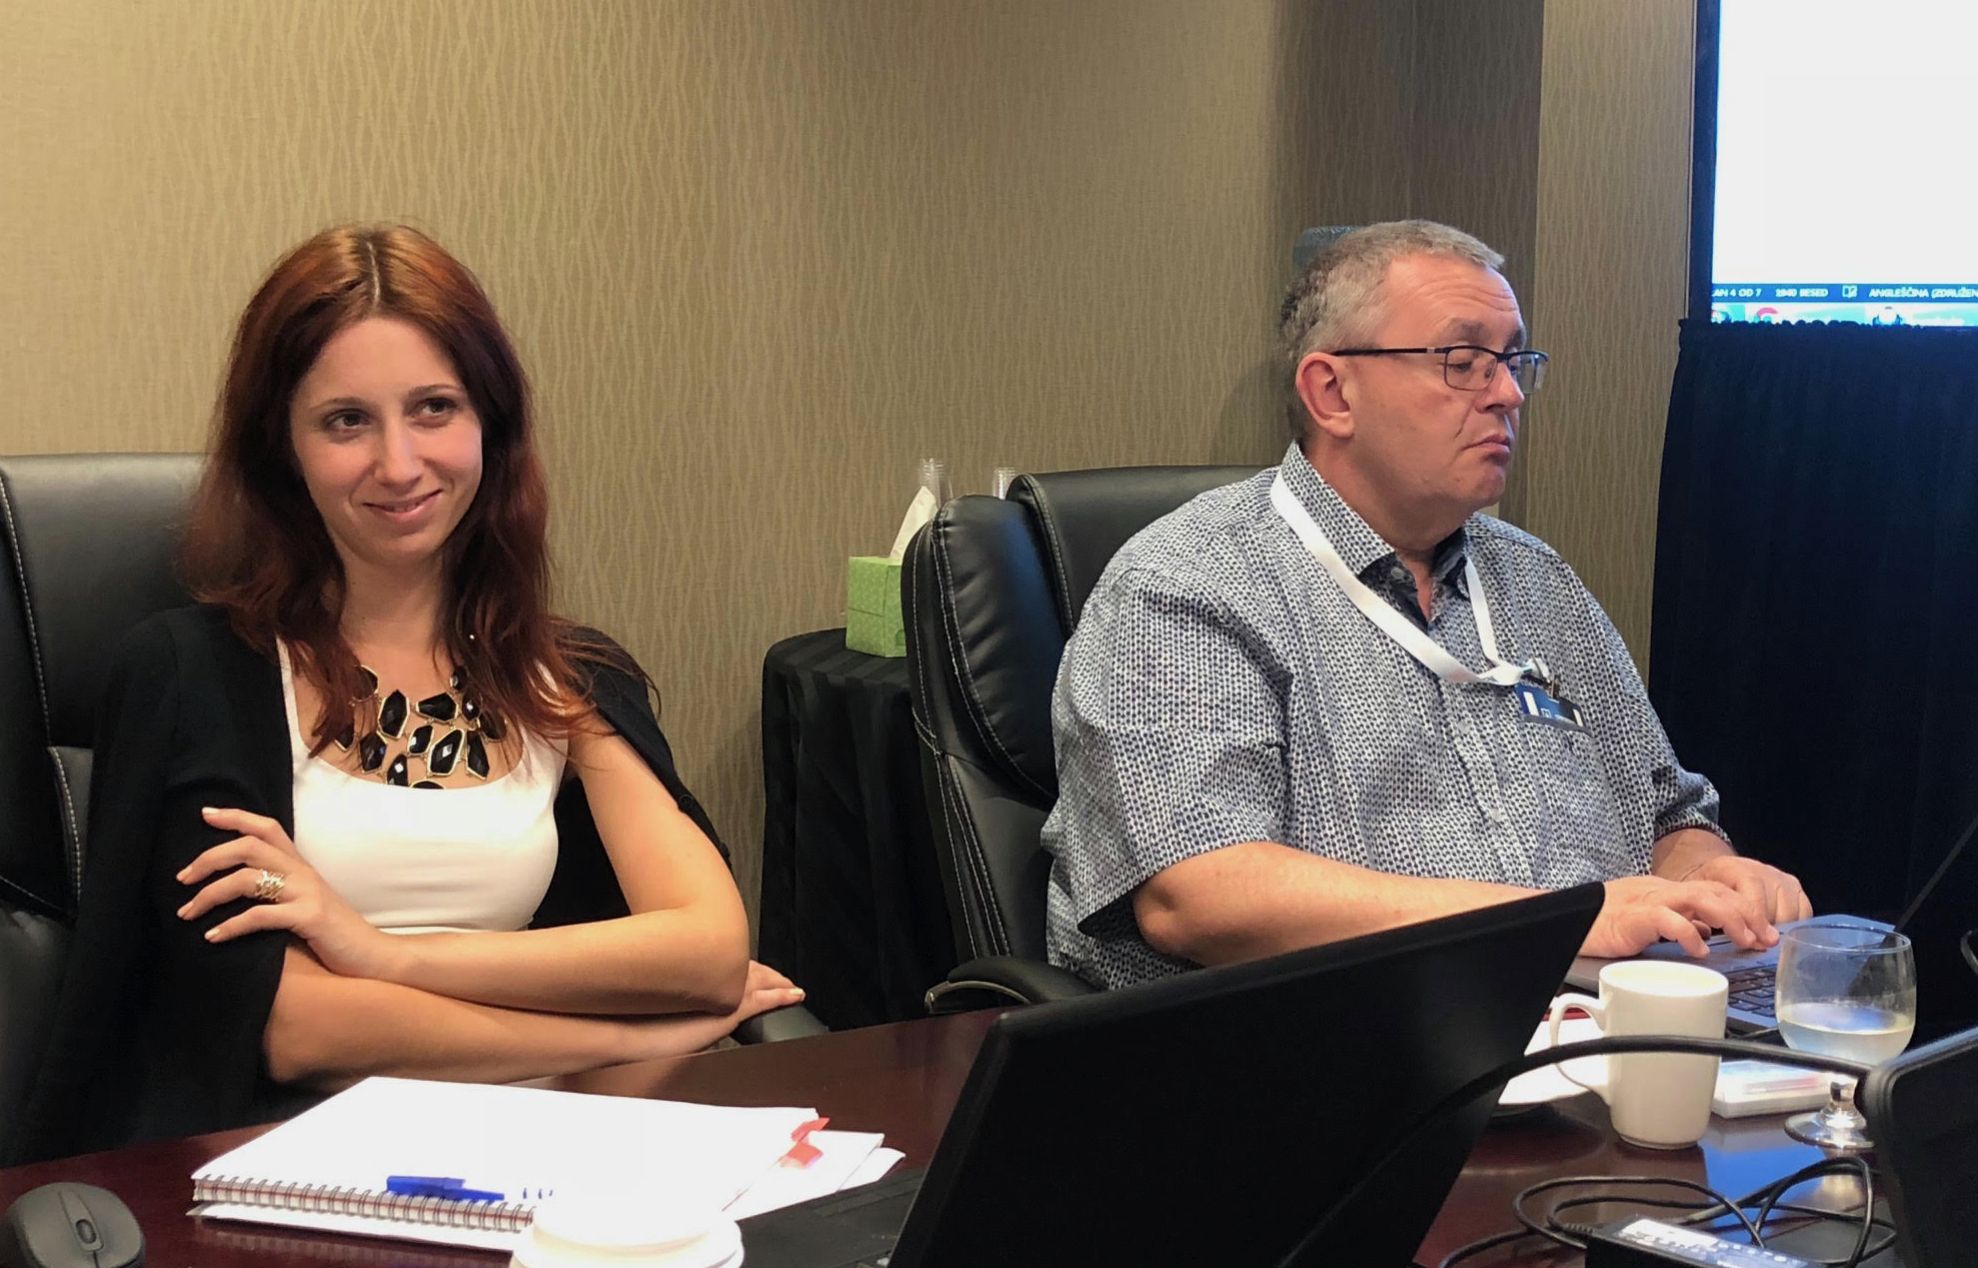 CTIF Secretary Neza Strmoli and CTIF Treasurer Marc Mamer at the Executive Committee Meeting in Las Vegas 2018.